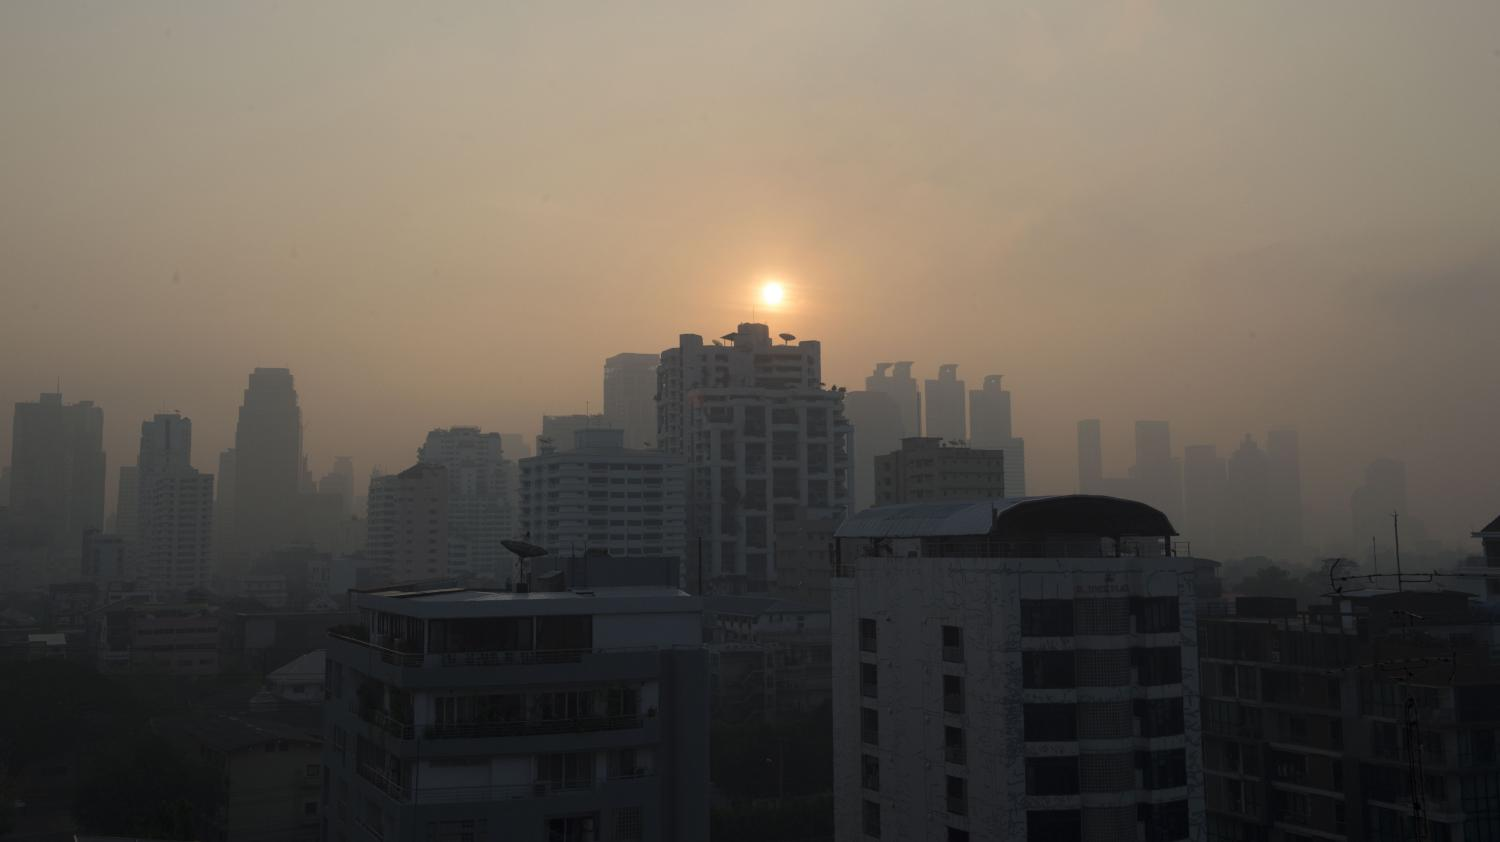 Thaïlande : Bangkok Suffoque à Cause D'un épais Nuage De Pollution